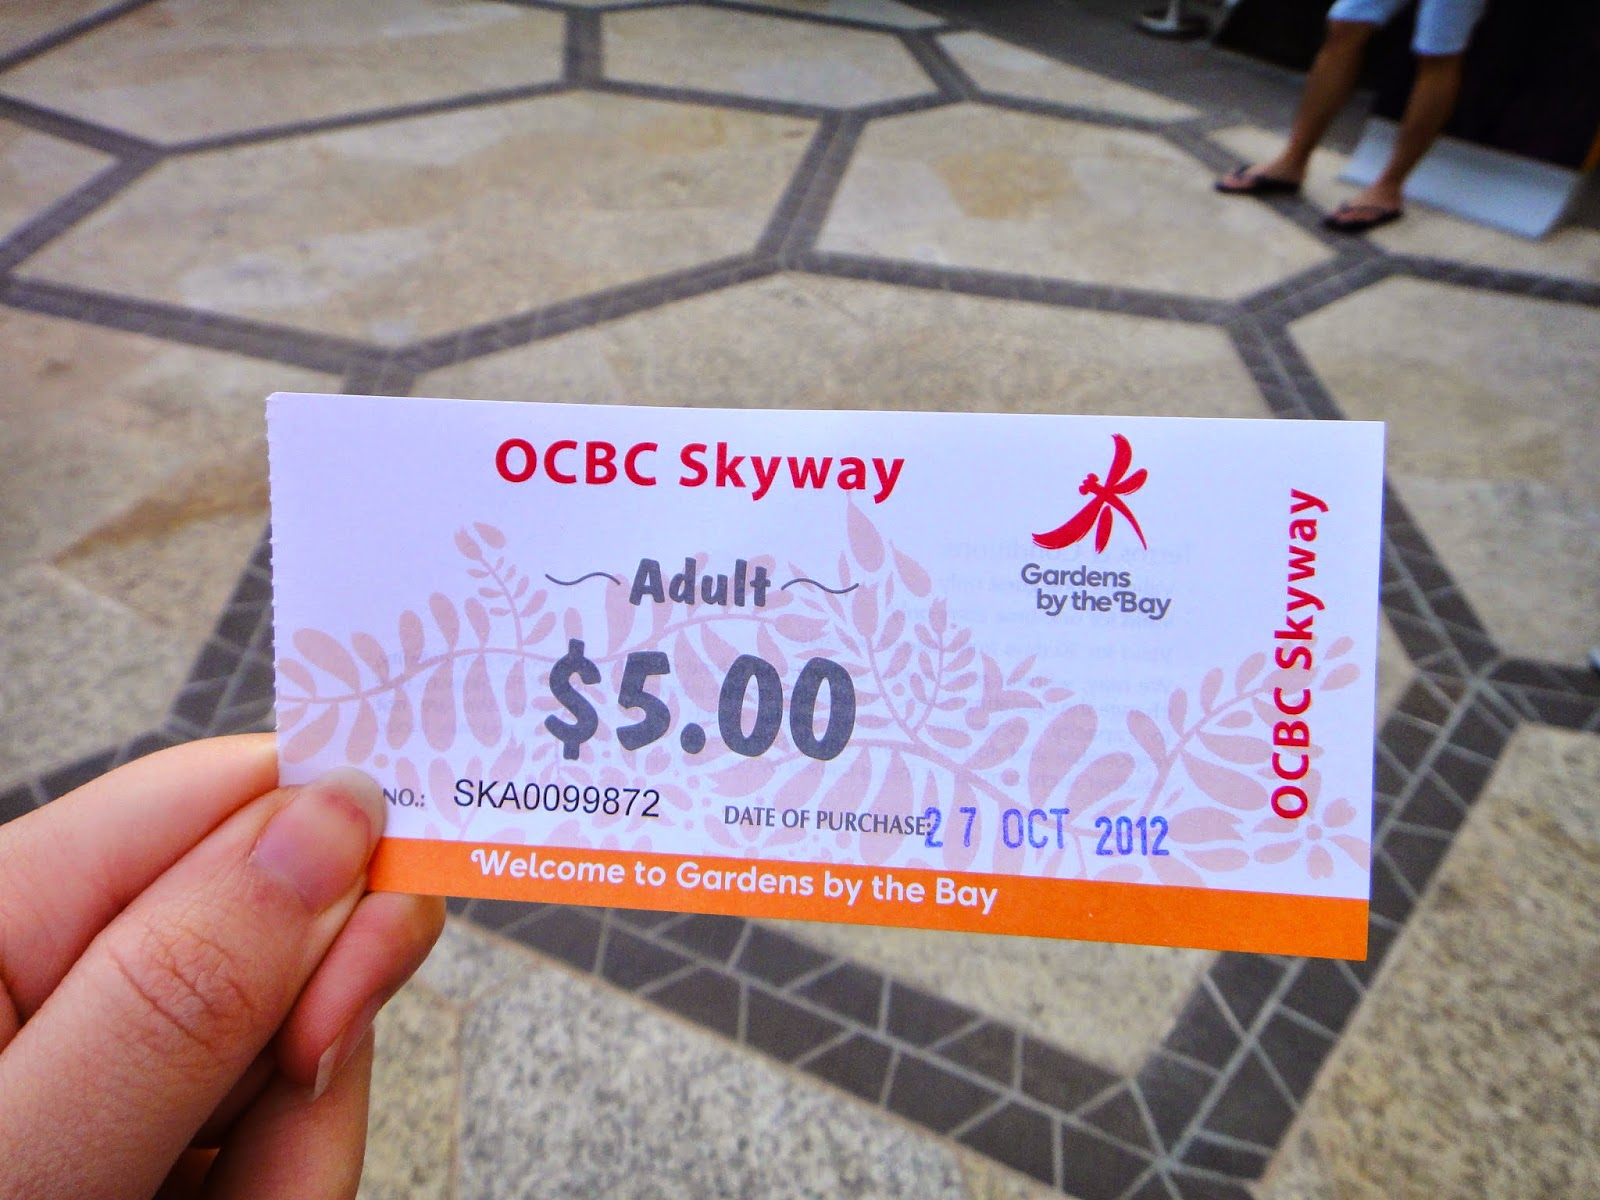 OCBC Skyway Adult Ticket Gardens by the Bay